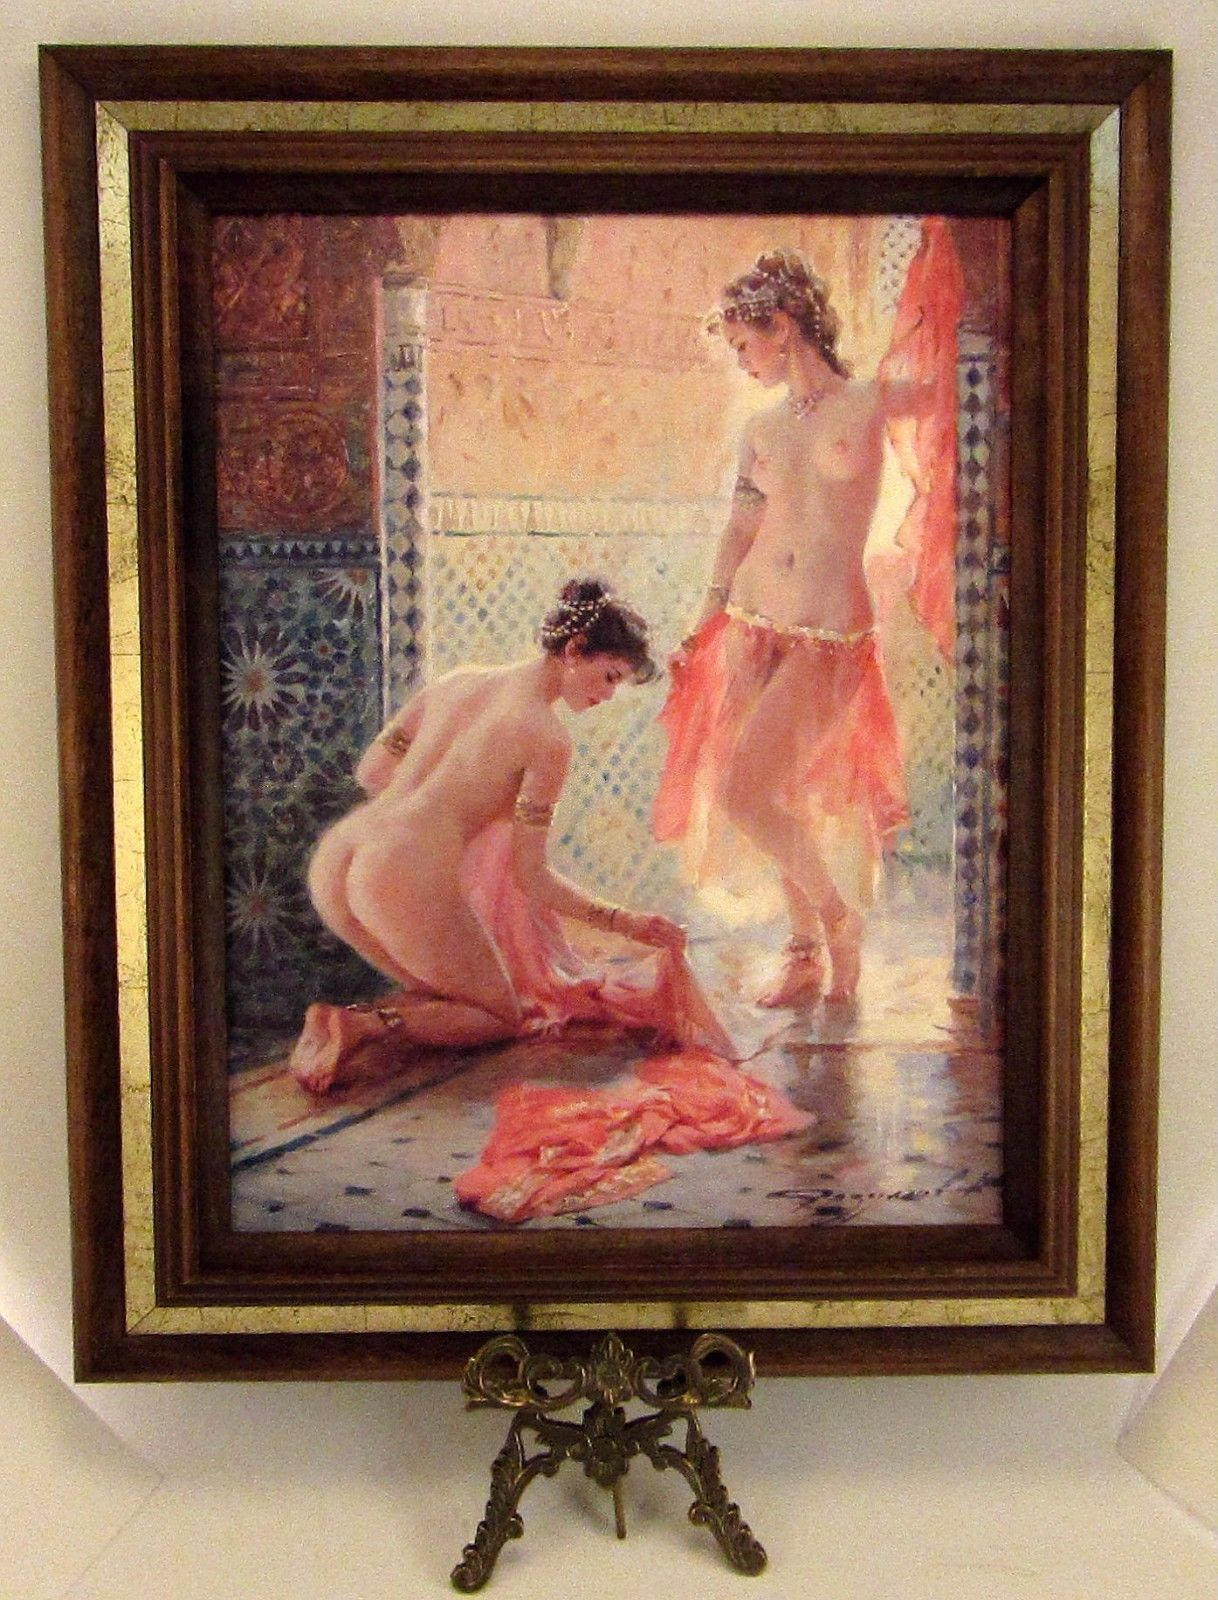 What necessary Beautiful nude painting for sale amusing topic